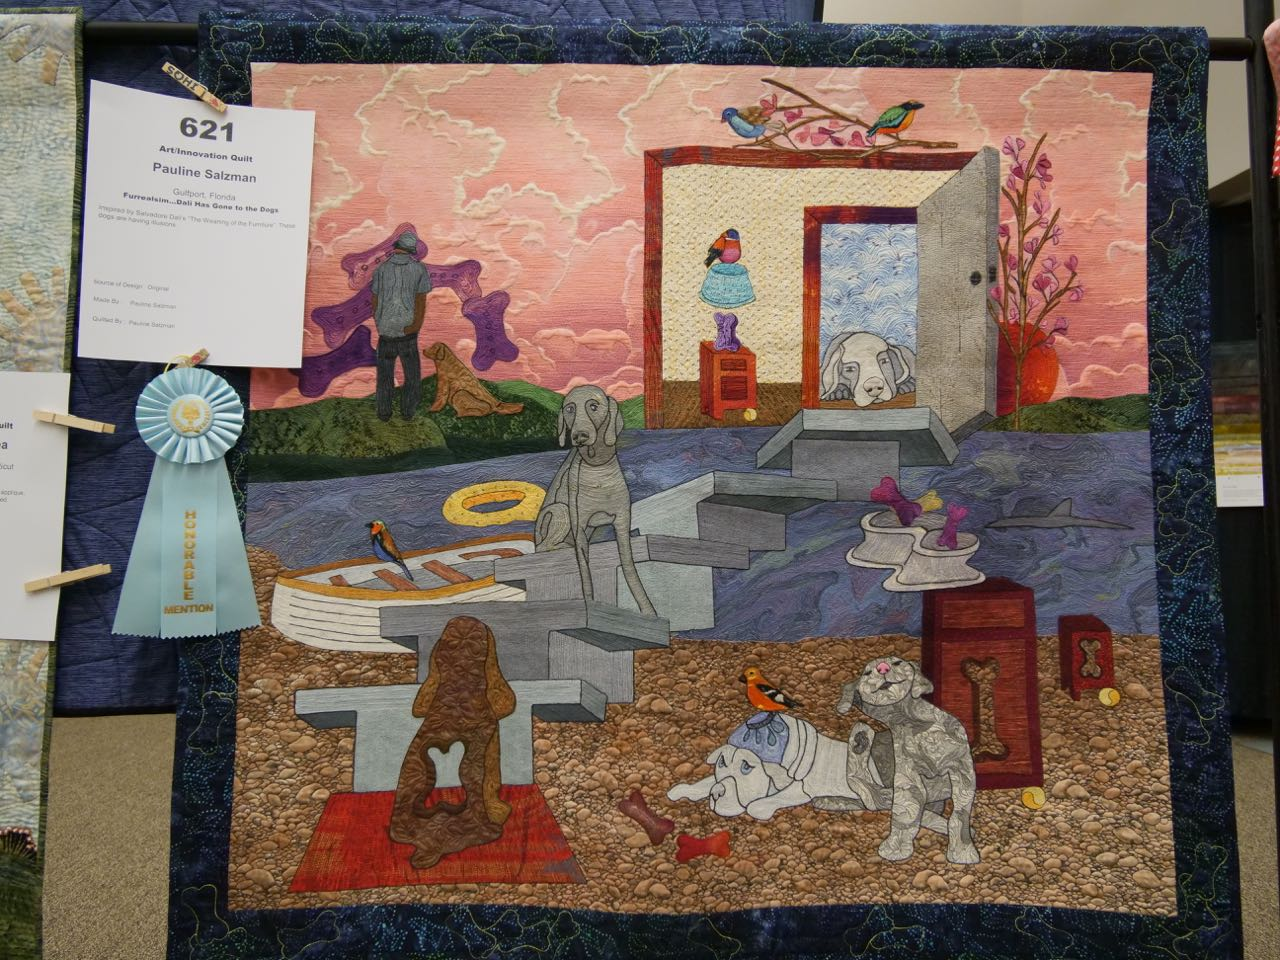 Furrealism: Dali Has Gone to the Dogs - Honorable Mention, Art/Innovation Quilts